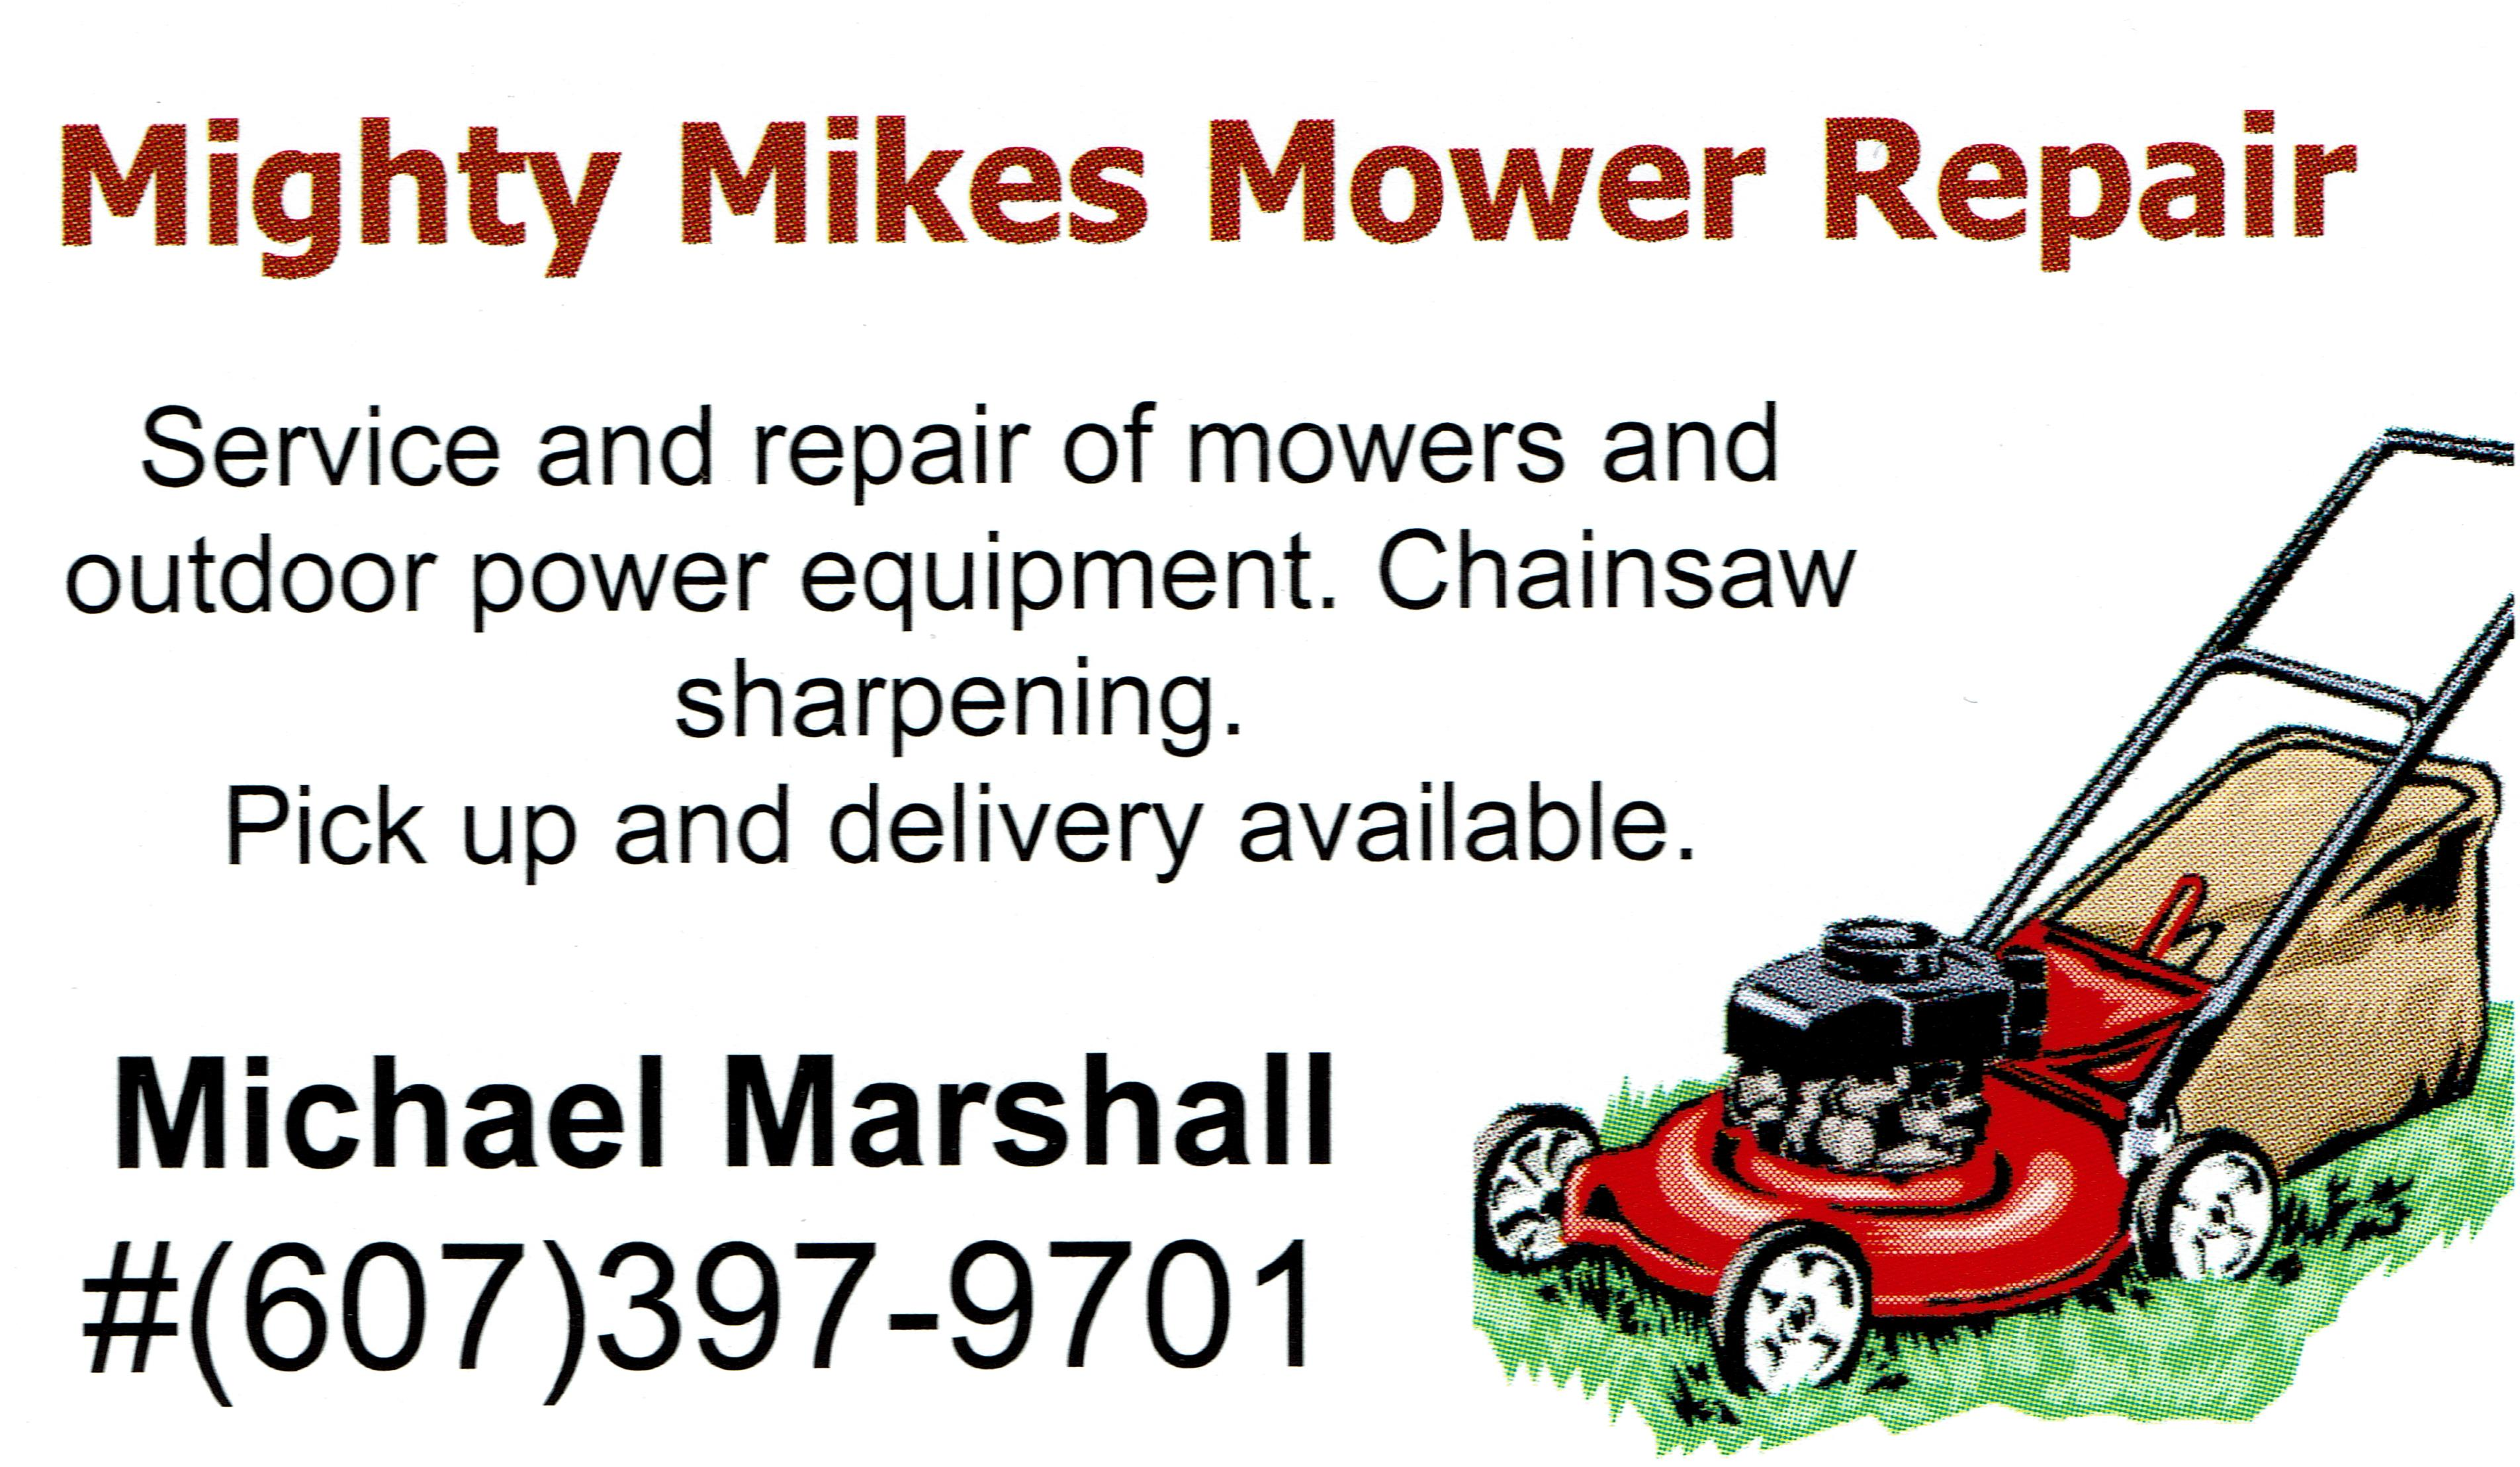 Mighty Mikes Mower Repair